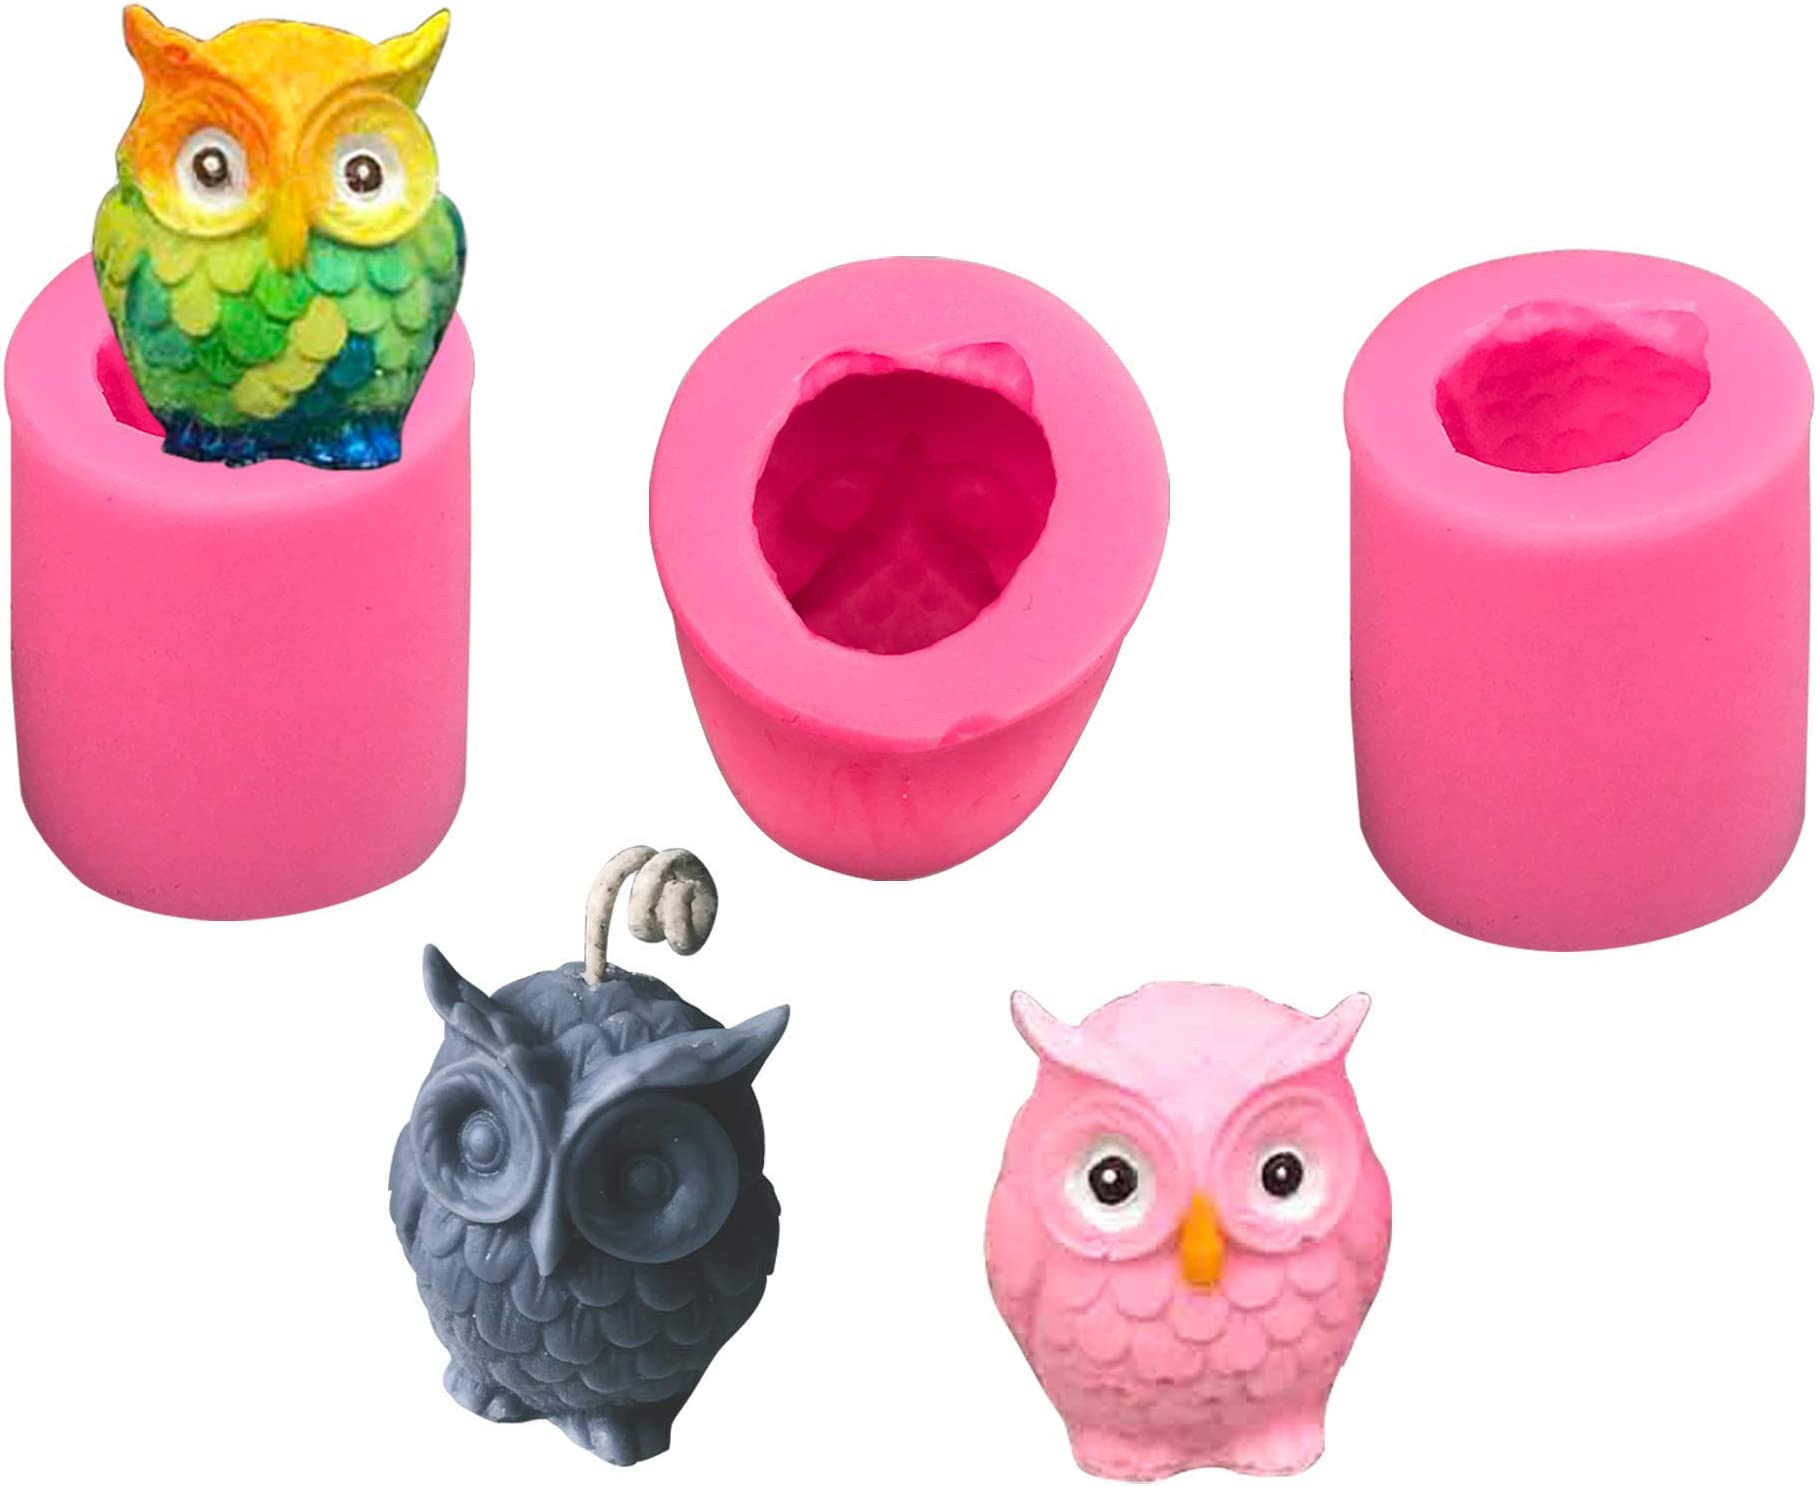 OWL SOAP MOLD Silicone soap making mould soap bar bird  plaster clay wax resin